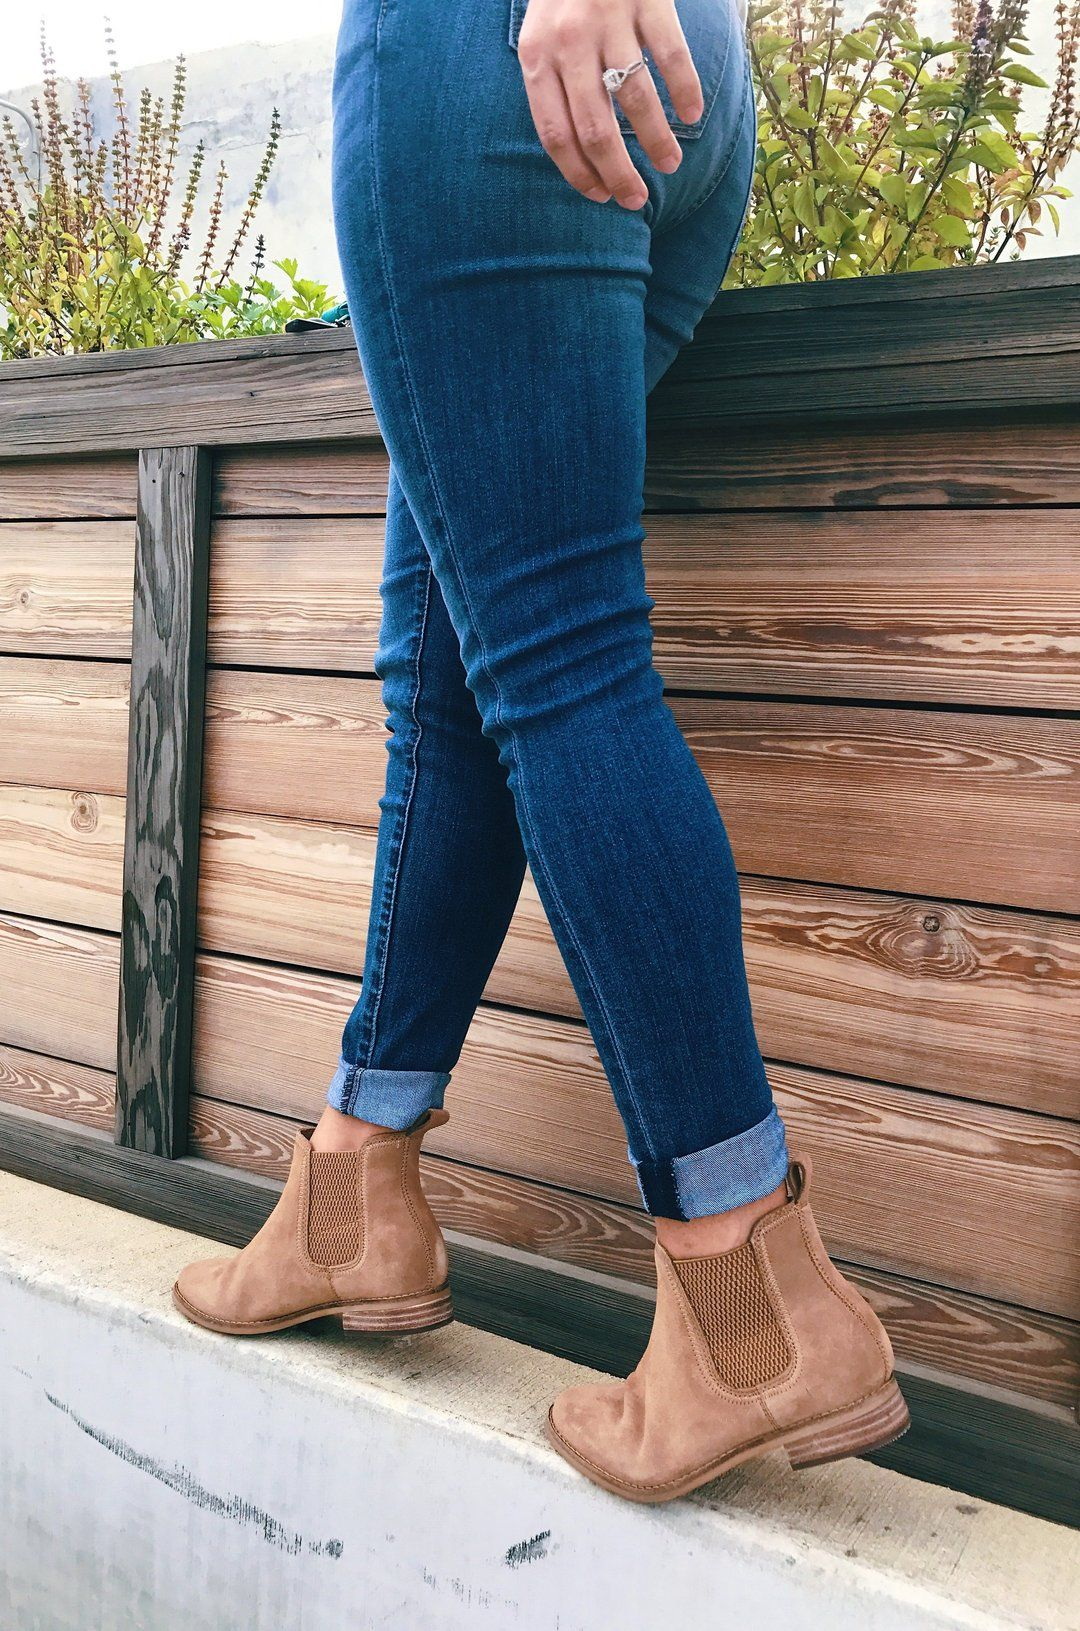 Boots outfit ankle, Boots outfit